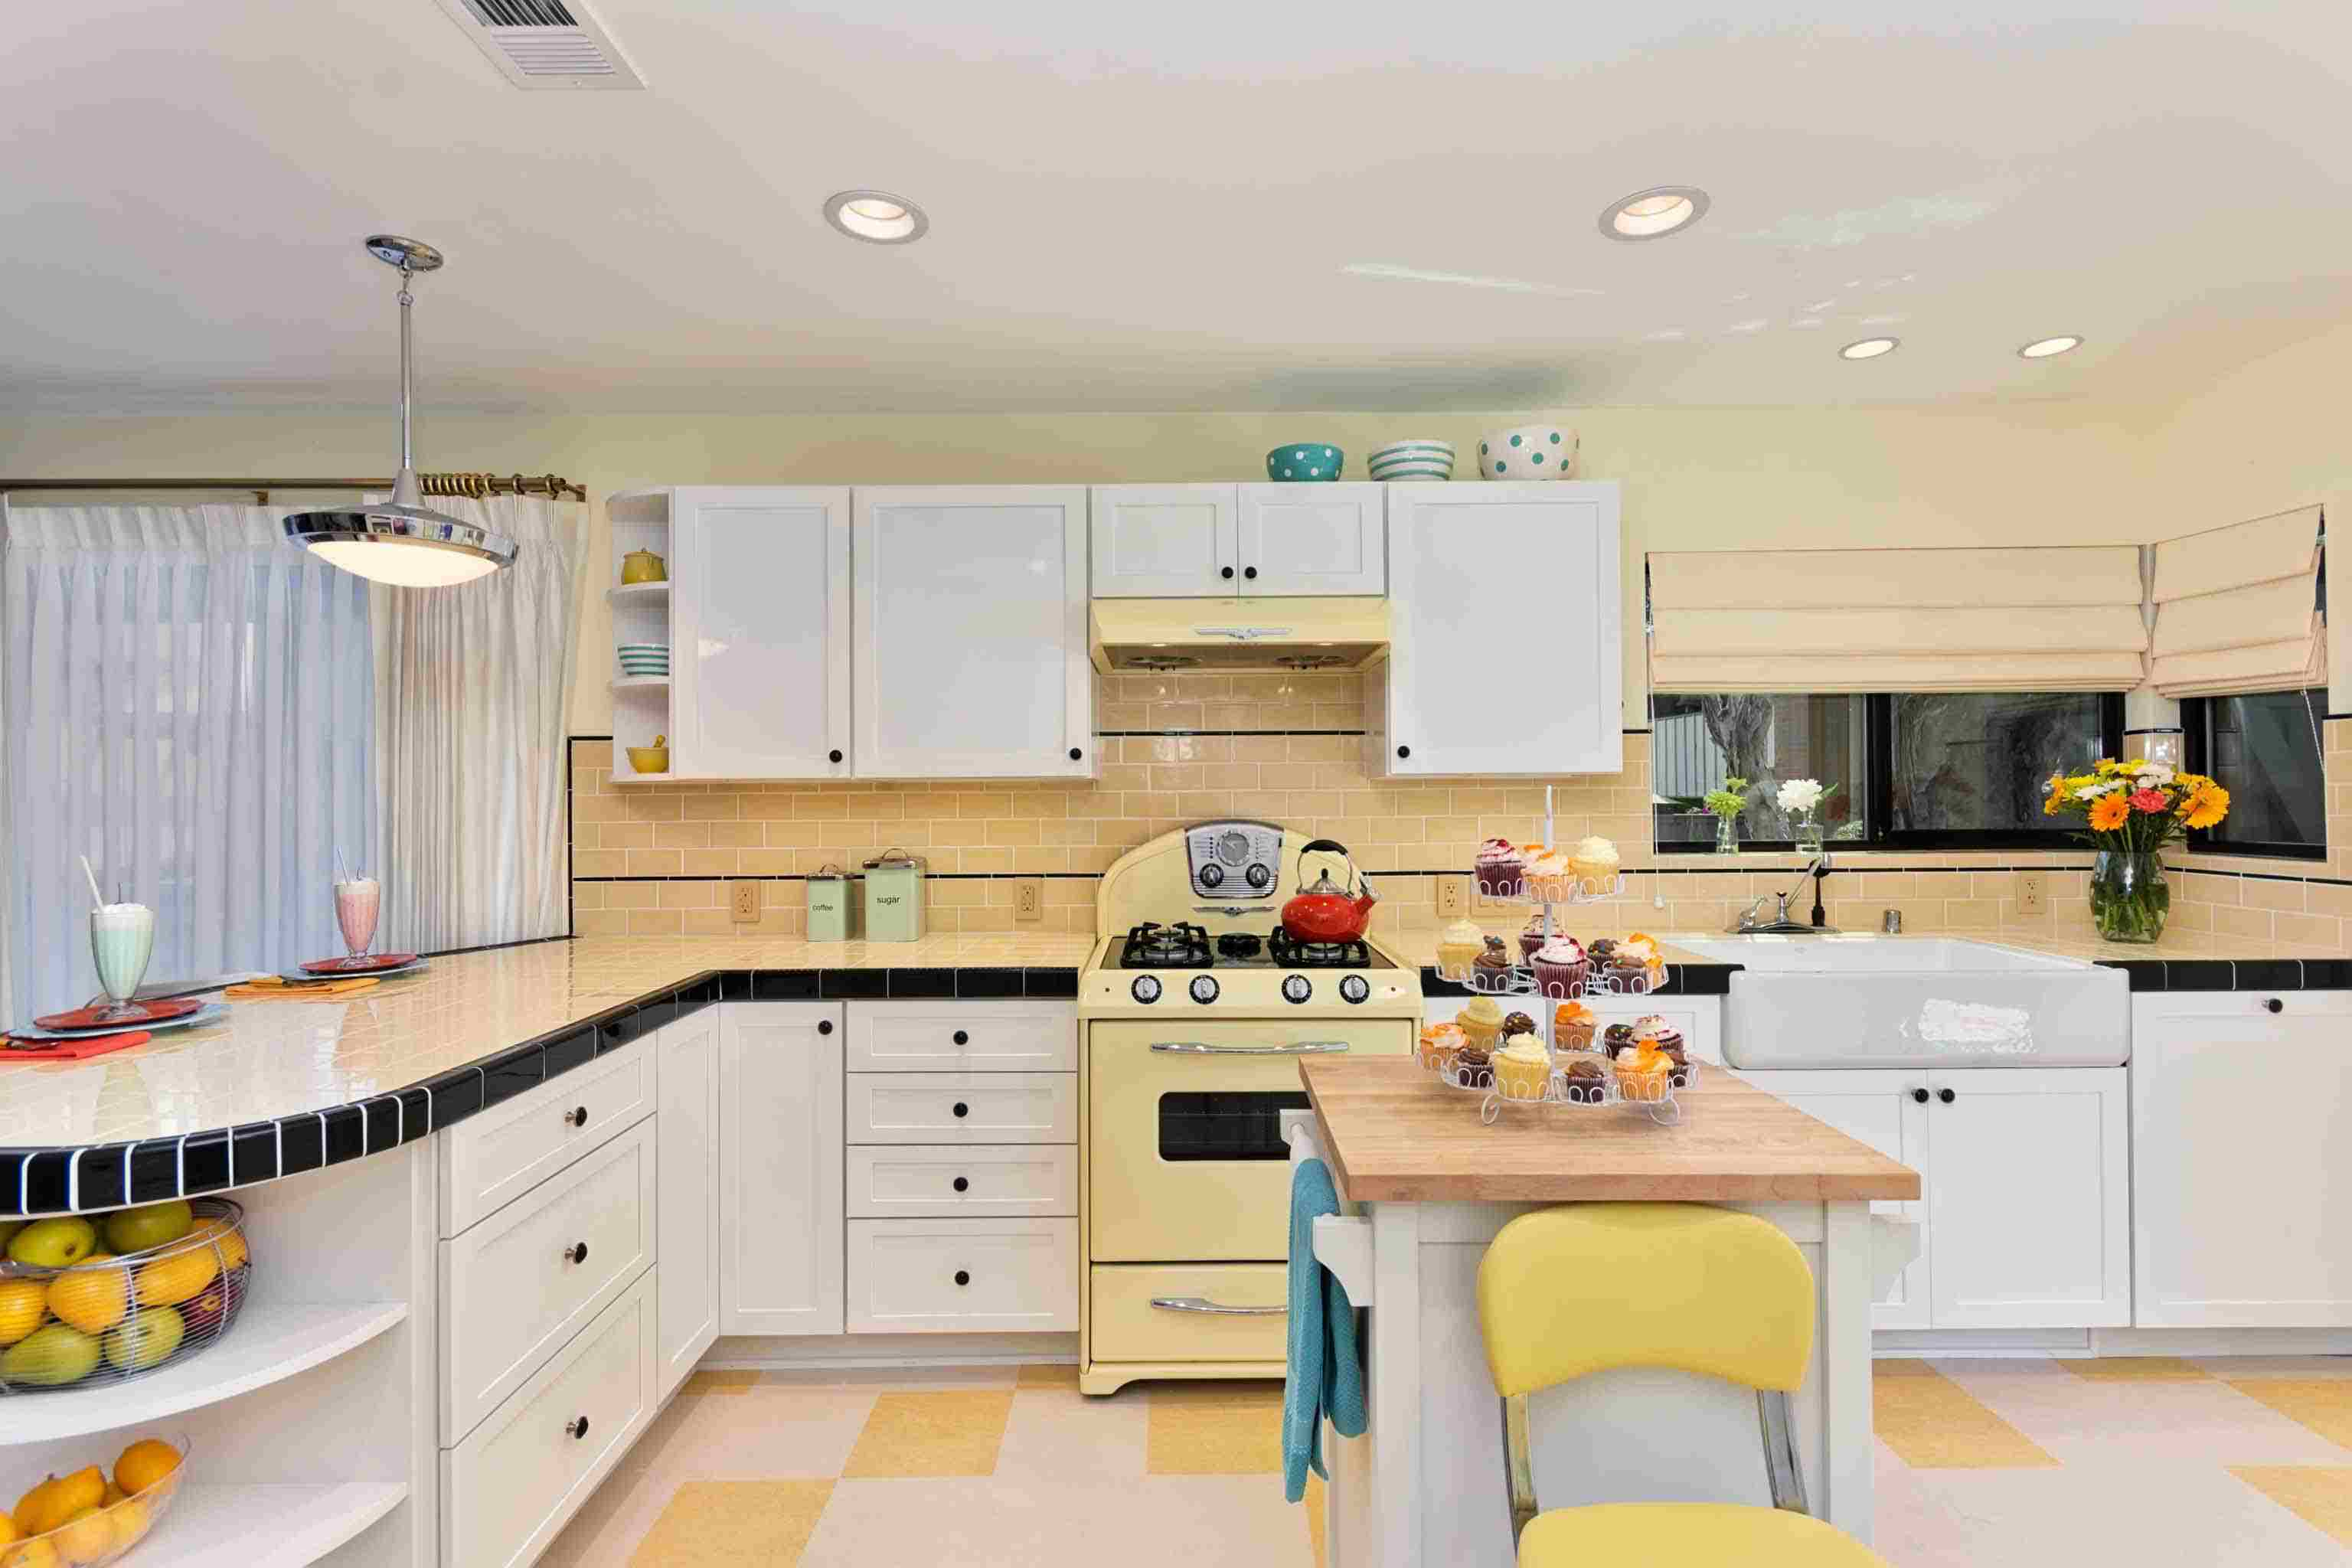 30 Beautiful Yellow Kitchen Ideas on golden yellow kitchen ideas, bright country kitchen ideas, yellow kitchen decorating ideas, yellow kitchen wall ideas, bright yellow room ideas, bright yellow interiors, bright yellow fashion, gray and yellow kitchen ideas, bright yellow bathroom ideas, bright yellow kitchen decorations, yellow kitchen color ideas, bright yellow living rooms, blue and yellow kitchen ideas, lemon yellow kitchen ideas, yellow country kitchen ideas, soft yellow kitchen ideas, bright yellow color, bright yellow dining room, bright yellow walls, bright yellow laundry rooms,